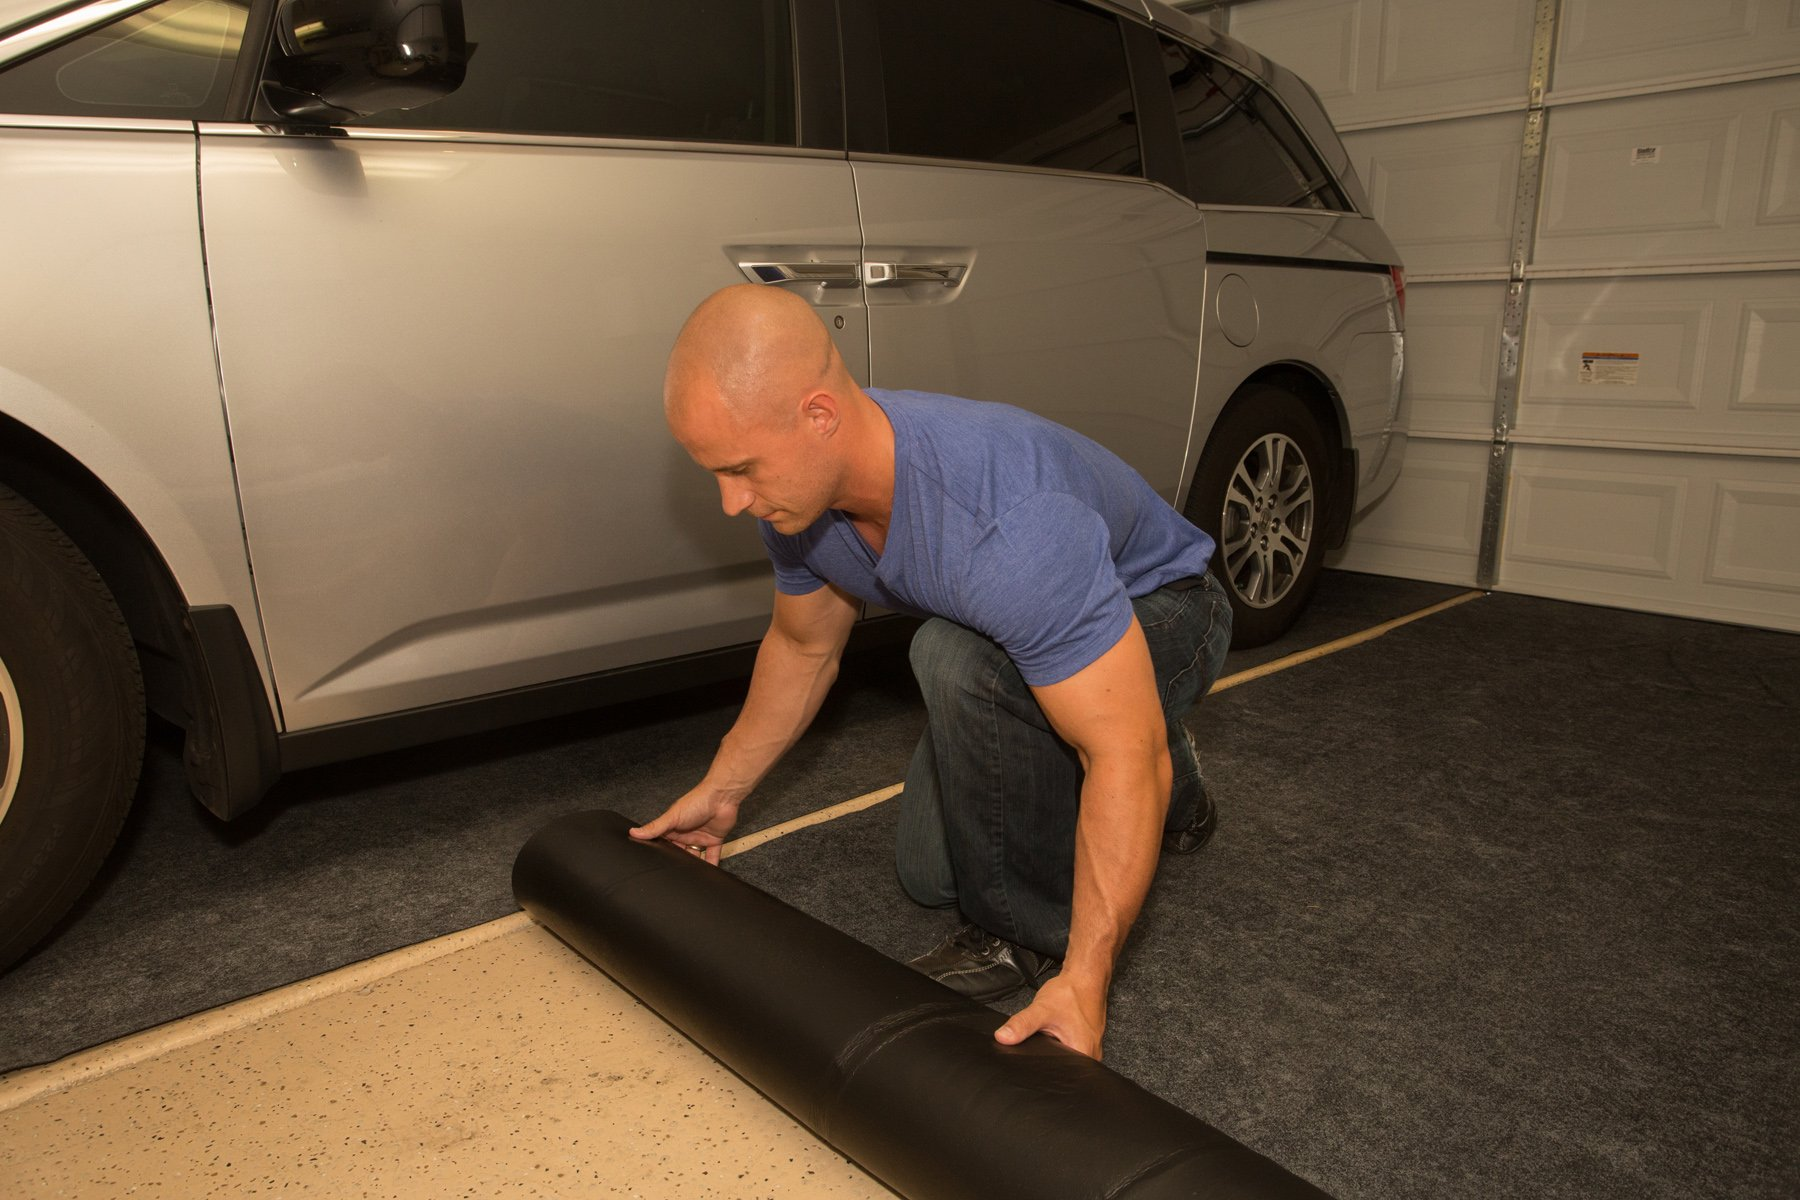 Armor All AAGFMC22 Garage Floor Mat 22' x 8'10'' (X-Large Charcoal) by Armor All (Image #2)